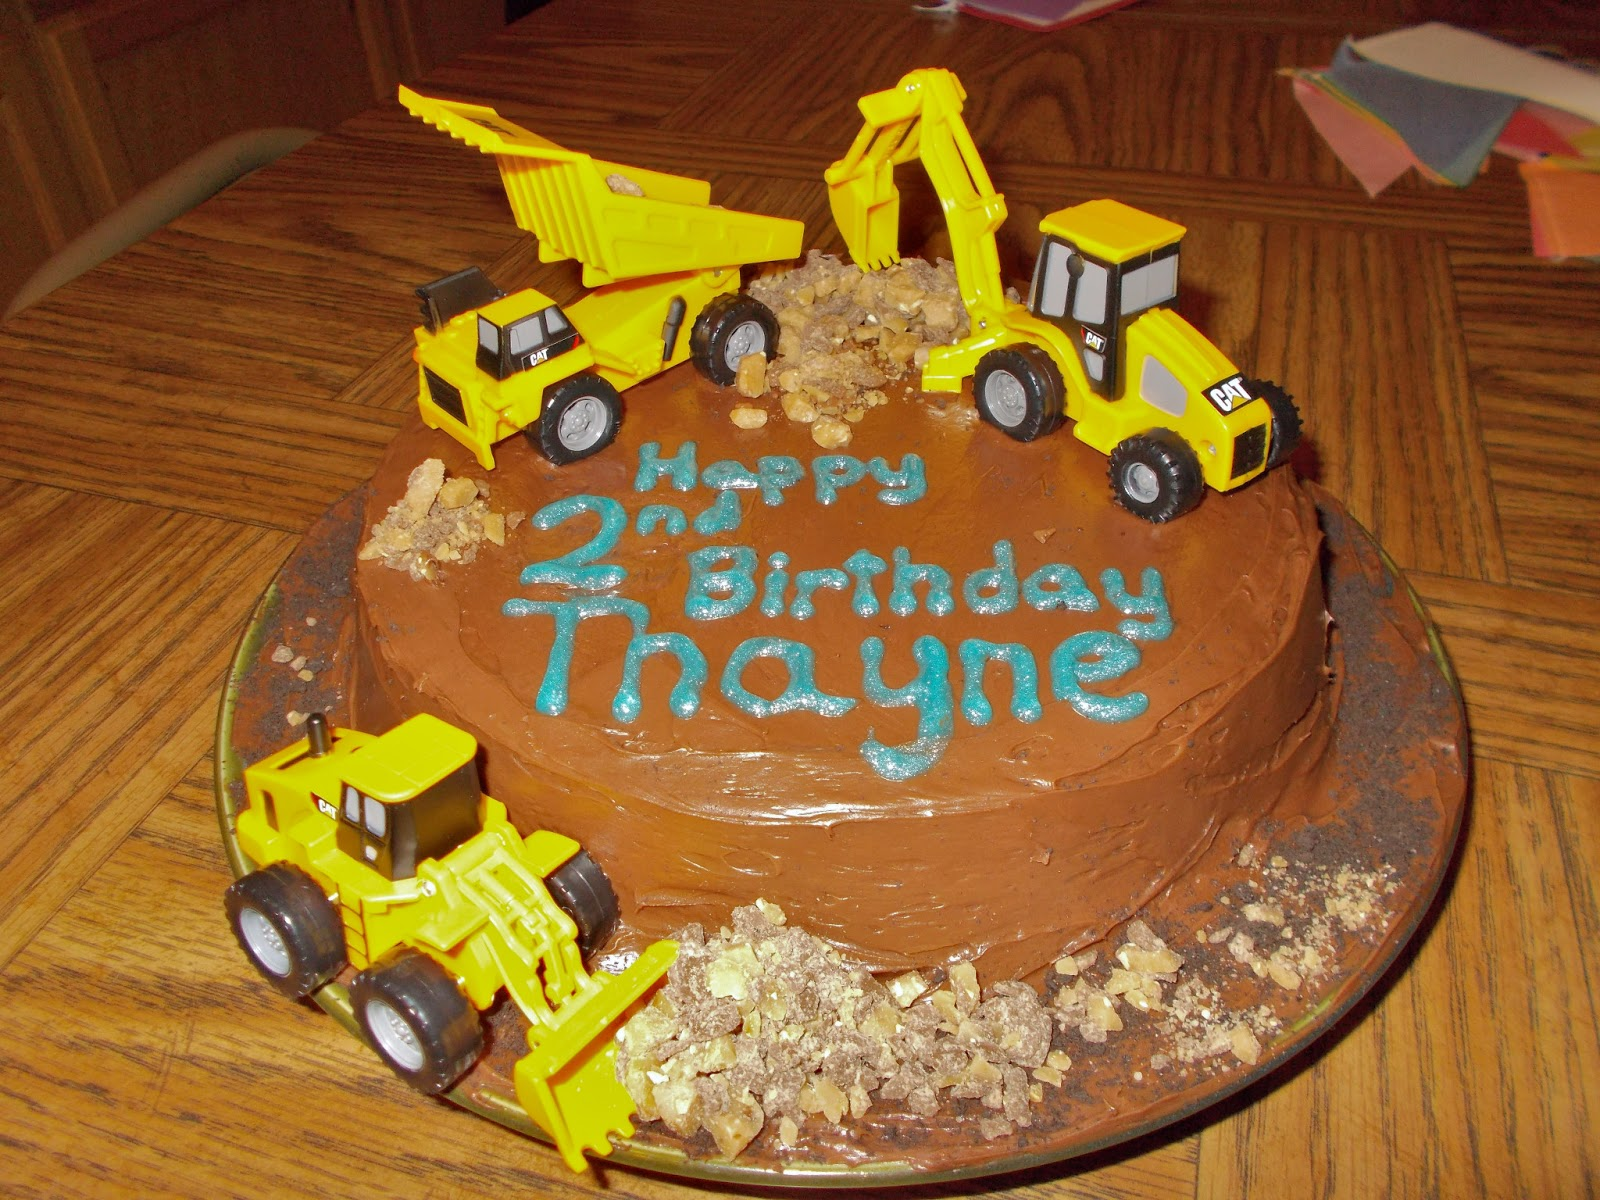 joyus designs ConstructionDump Truck 2 year old Birthday